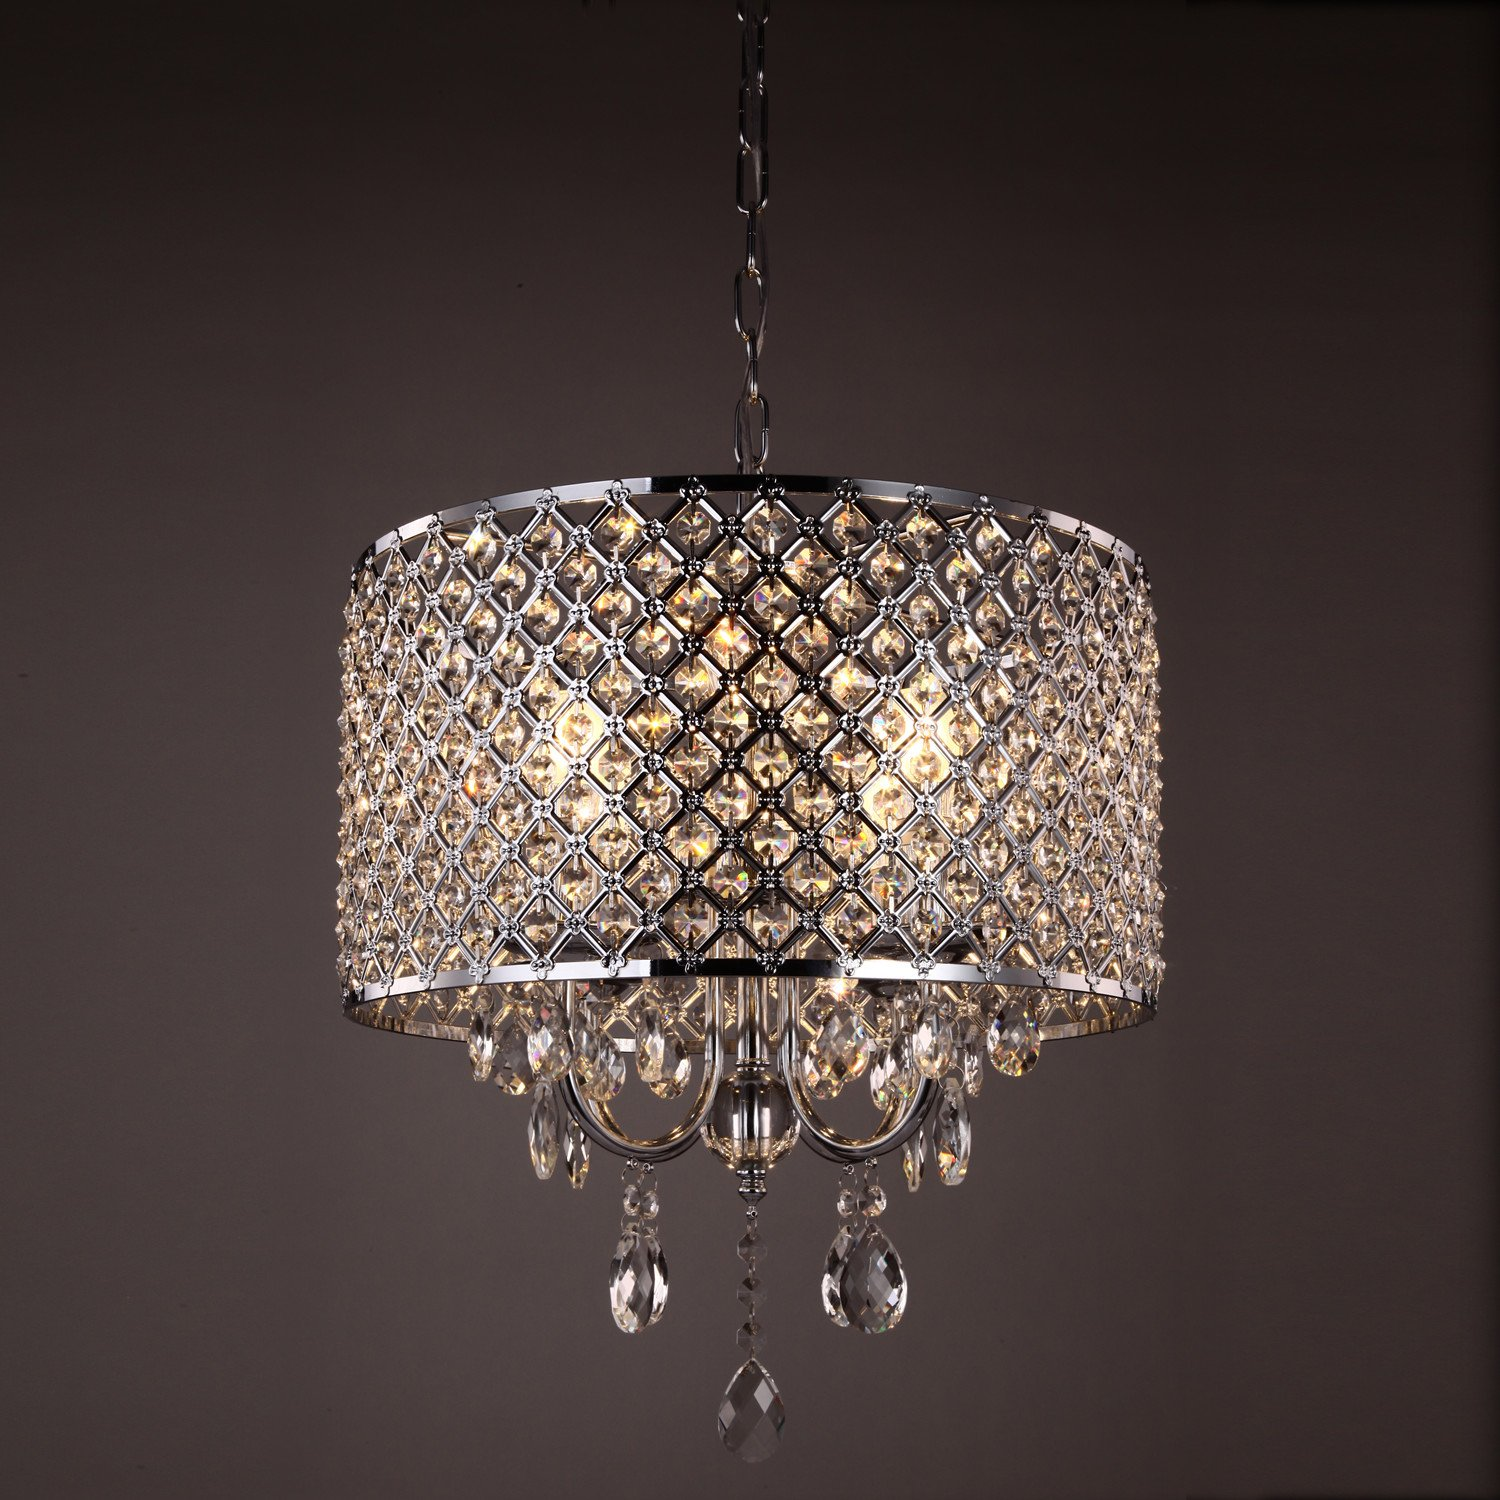 MirreaR Crystal Chromed Chandelier Pendant Light 4 Lights